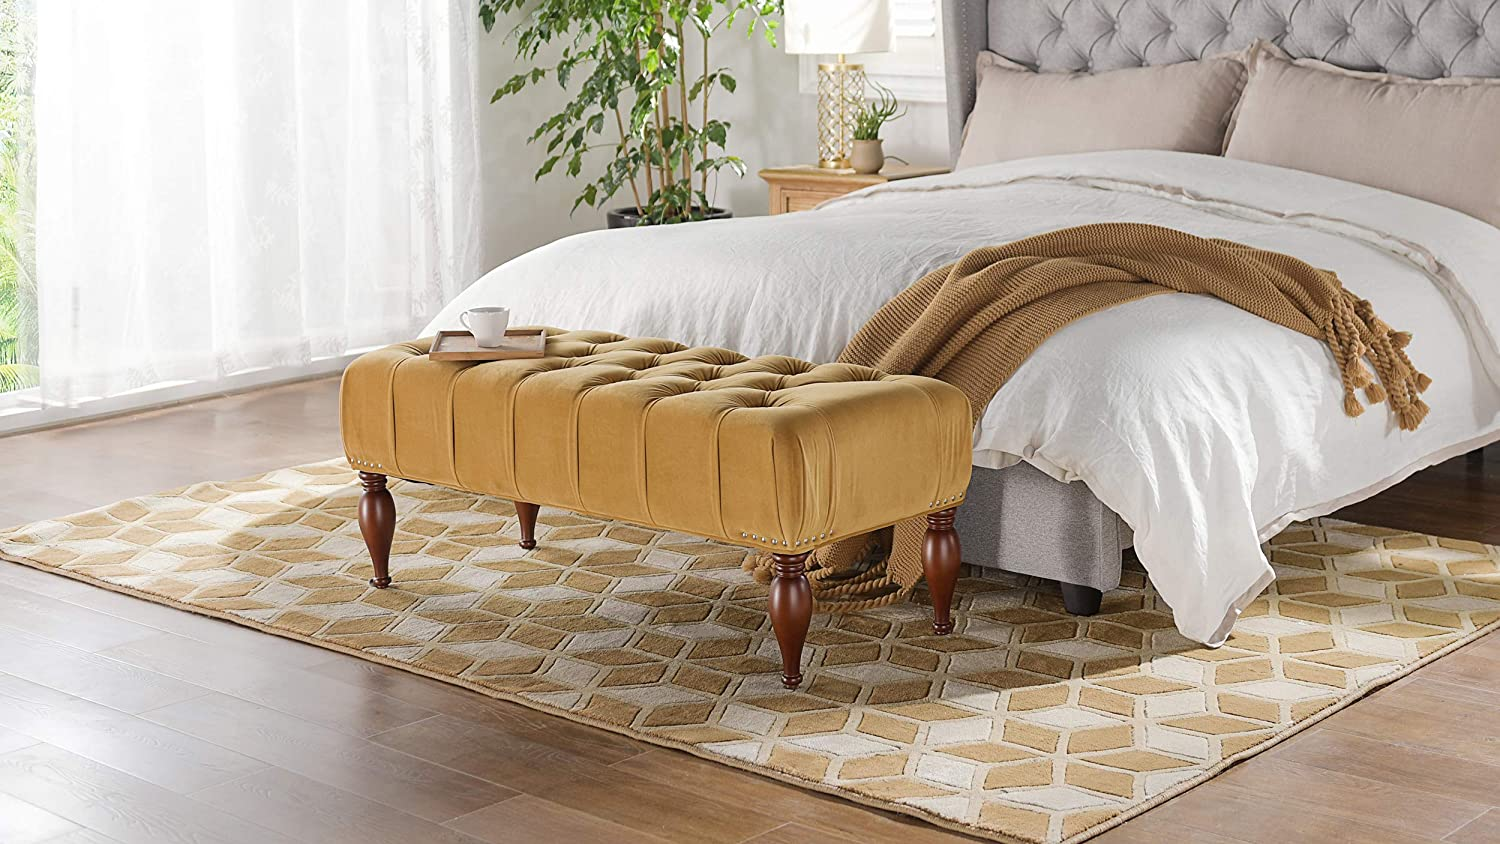 Jennifer Taylor Home, Entryway Bench, Gold, Hand Tufted, Hand Painted and Hand Rub Finished Legs